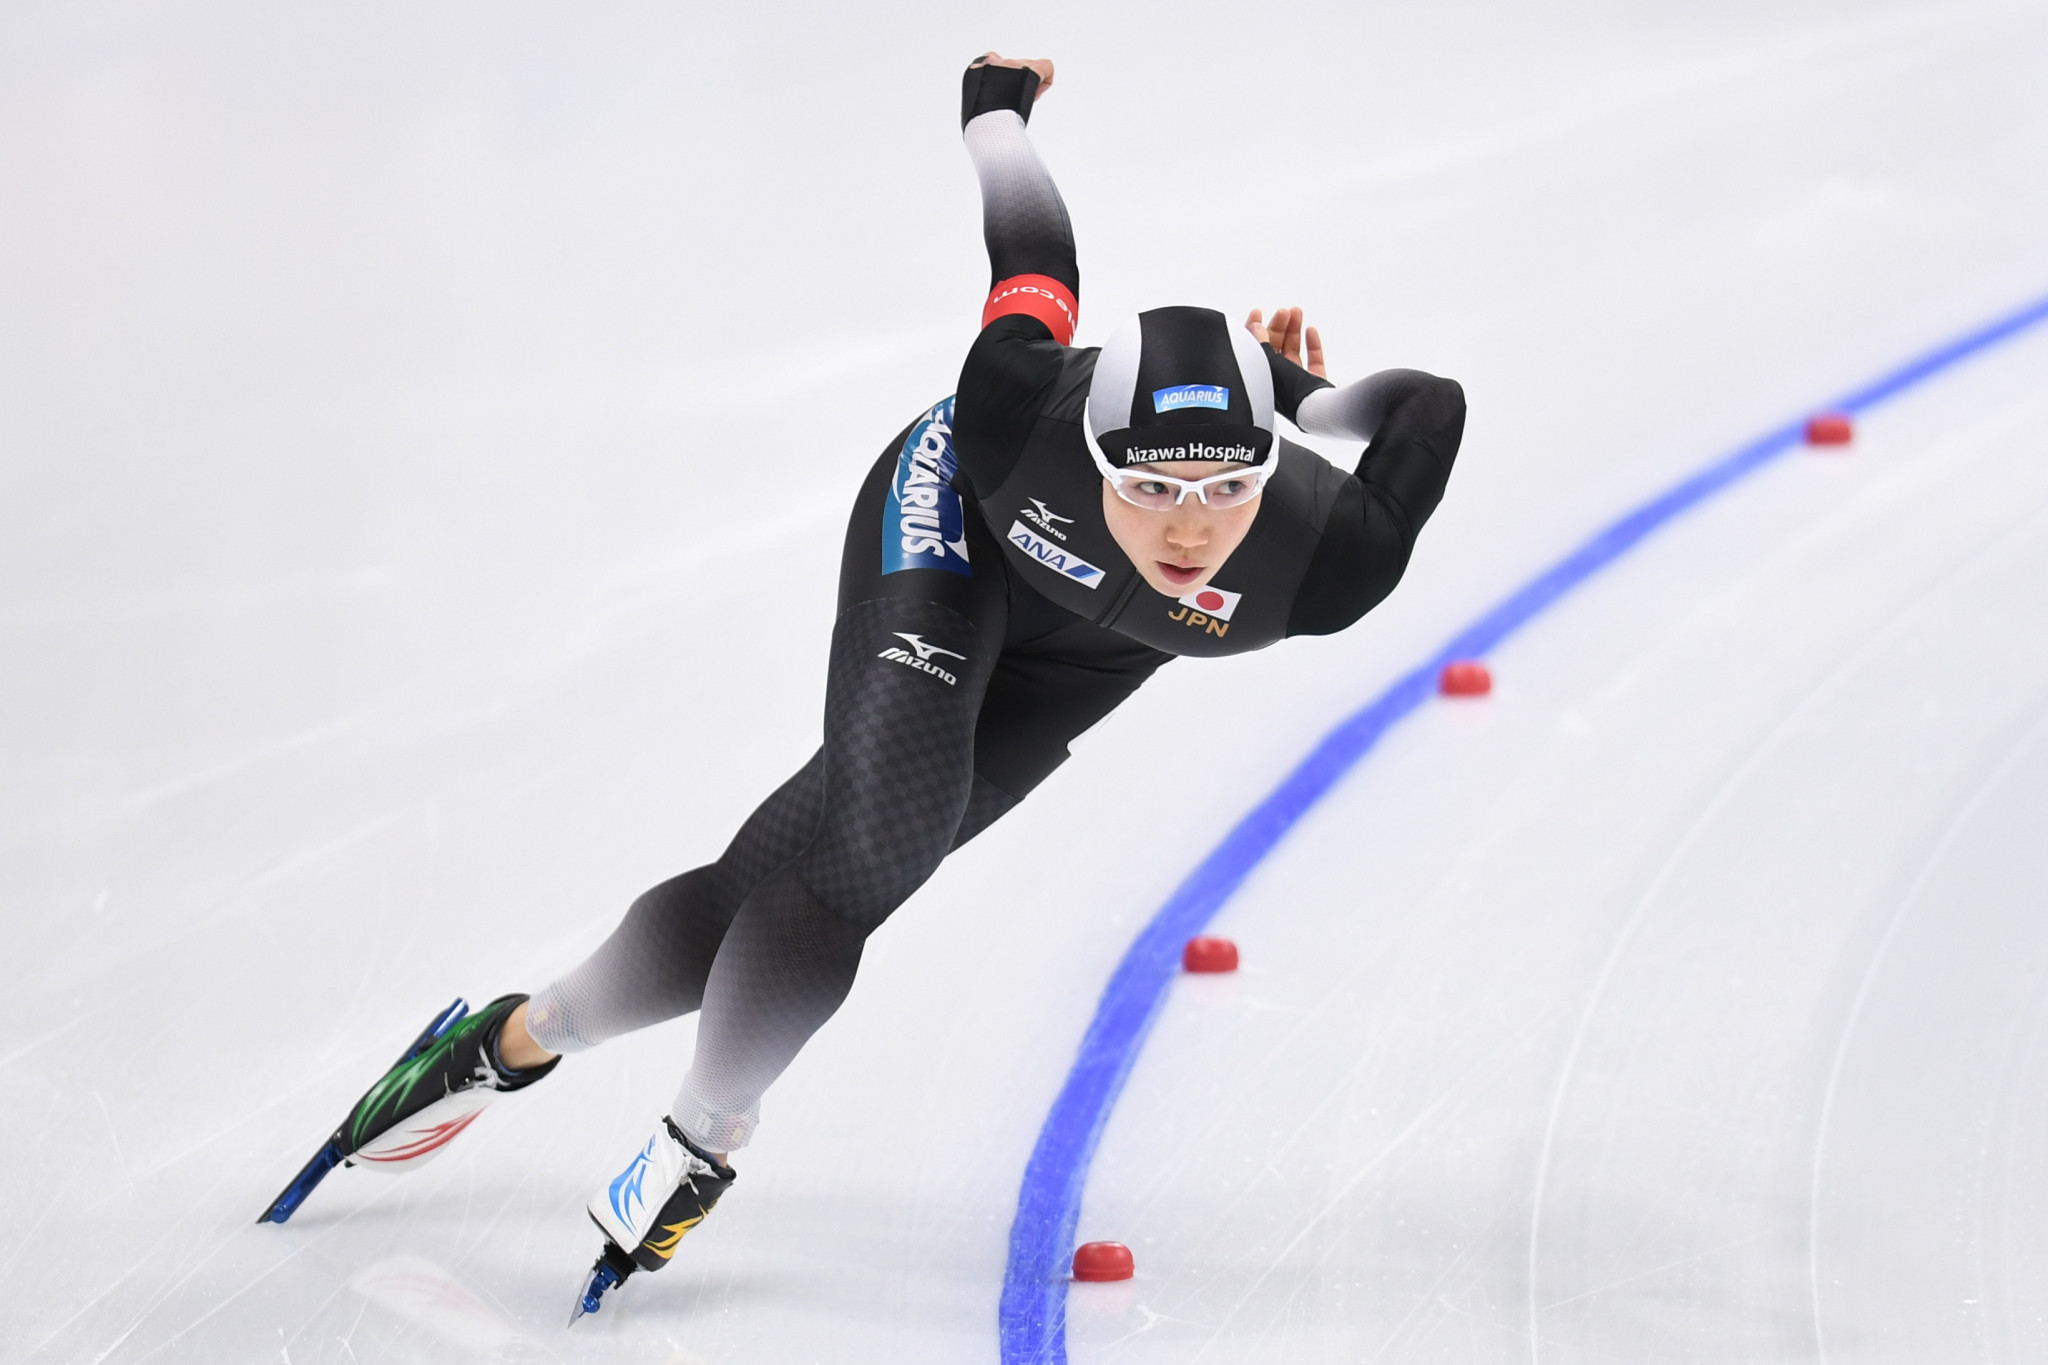 Kodaira secures second gold medal on successful day for Japan at ISU Speed Skating World Cup